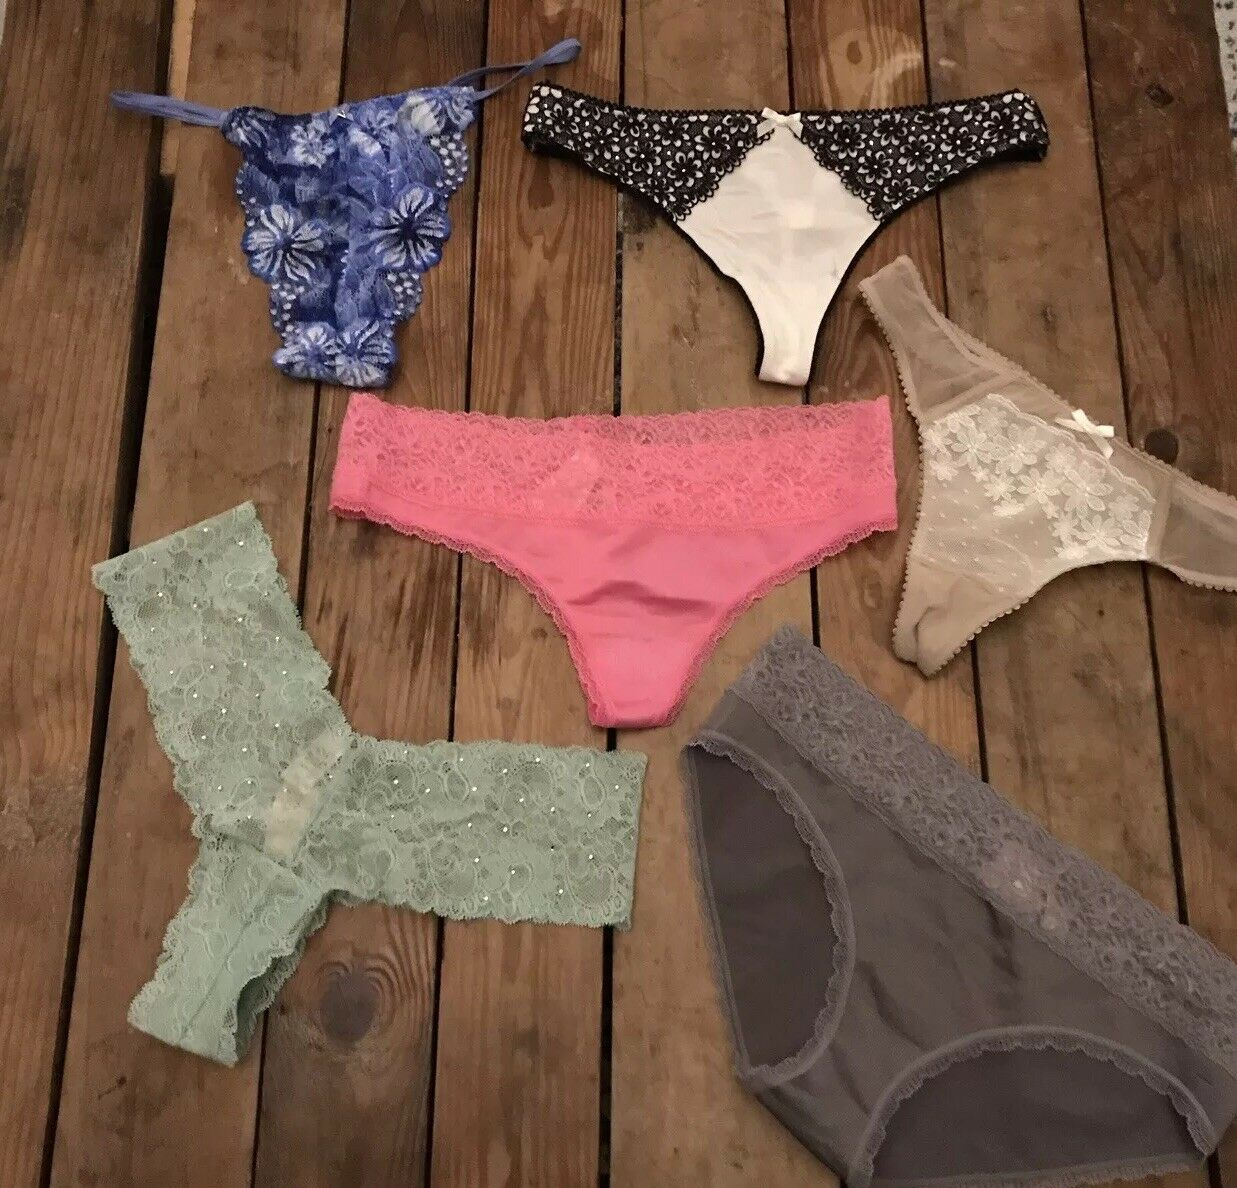 NWT Victoria's Secret Bundle of 6 Panties Multiple Styles Size M MSRP  99 CG24